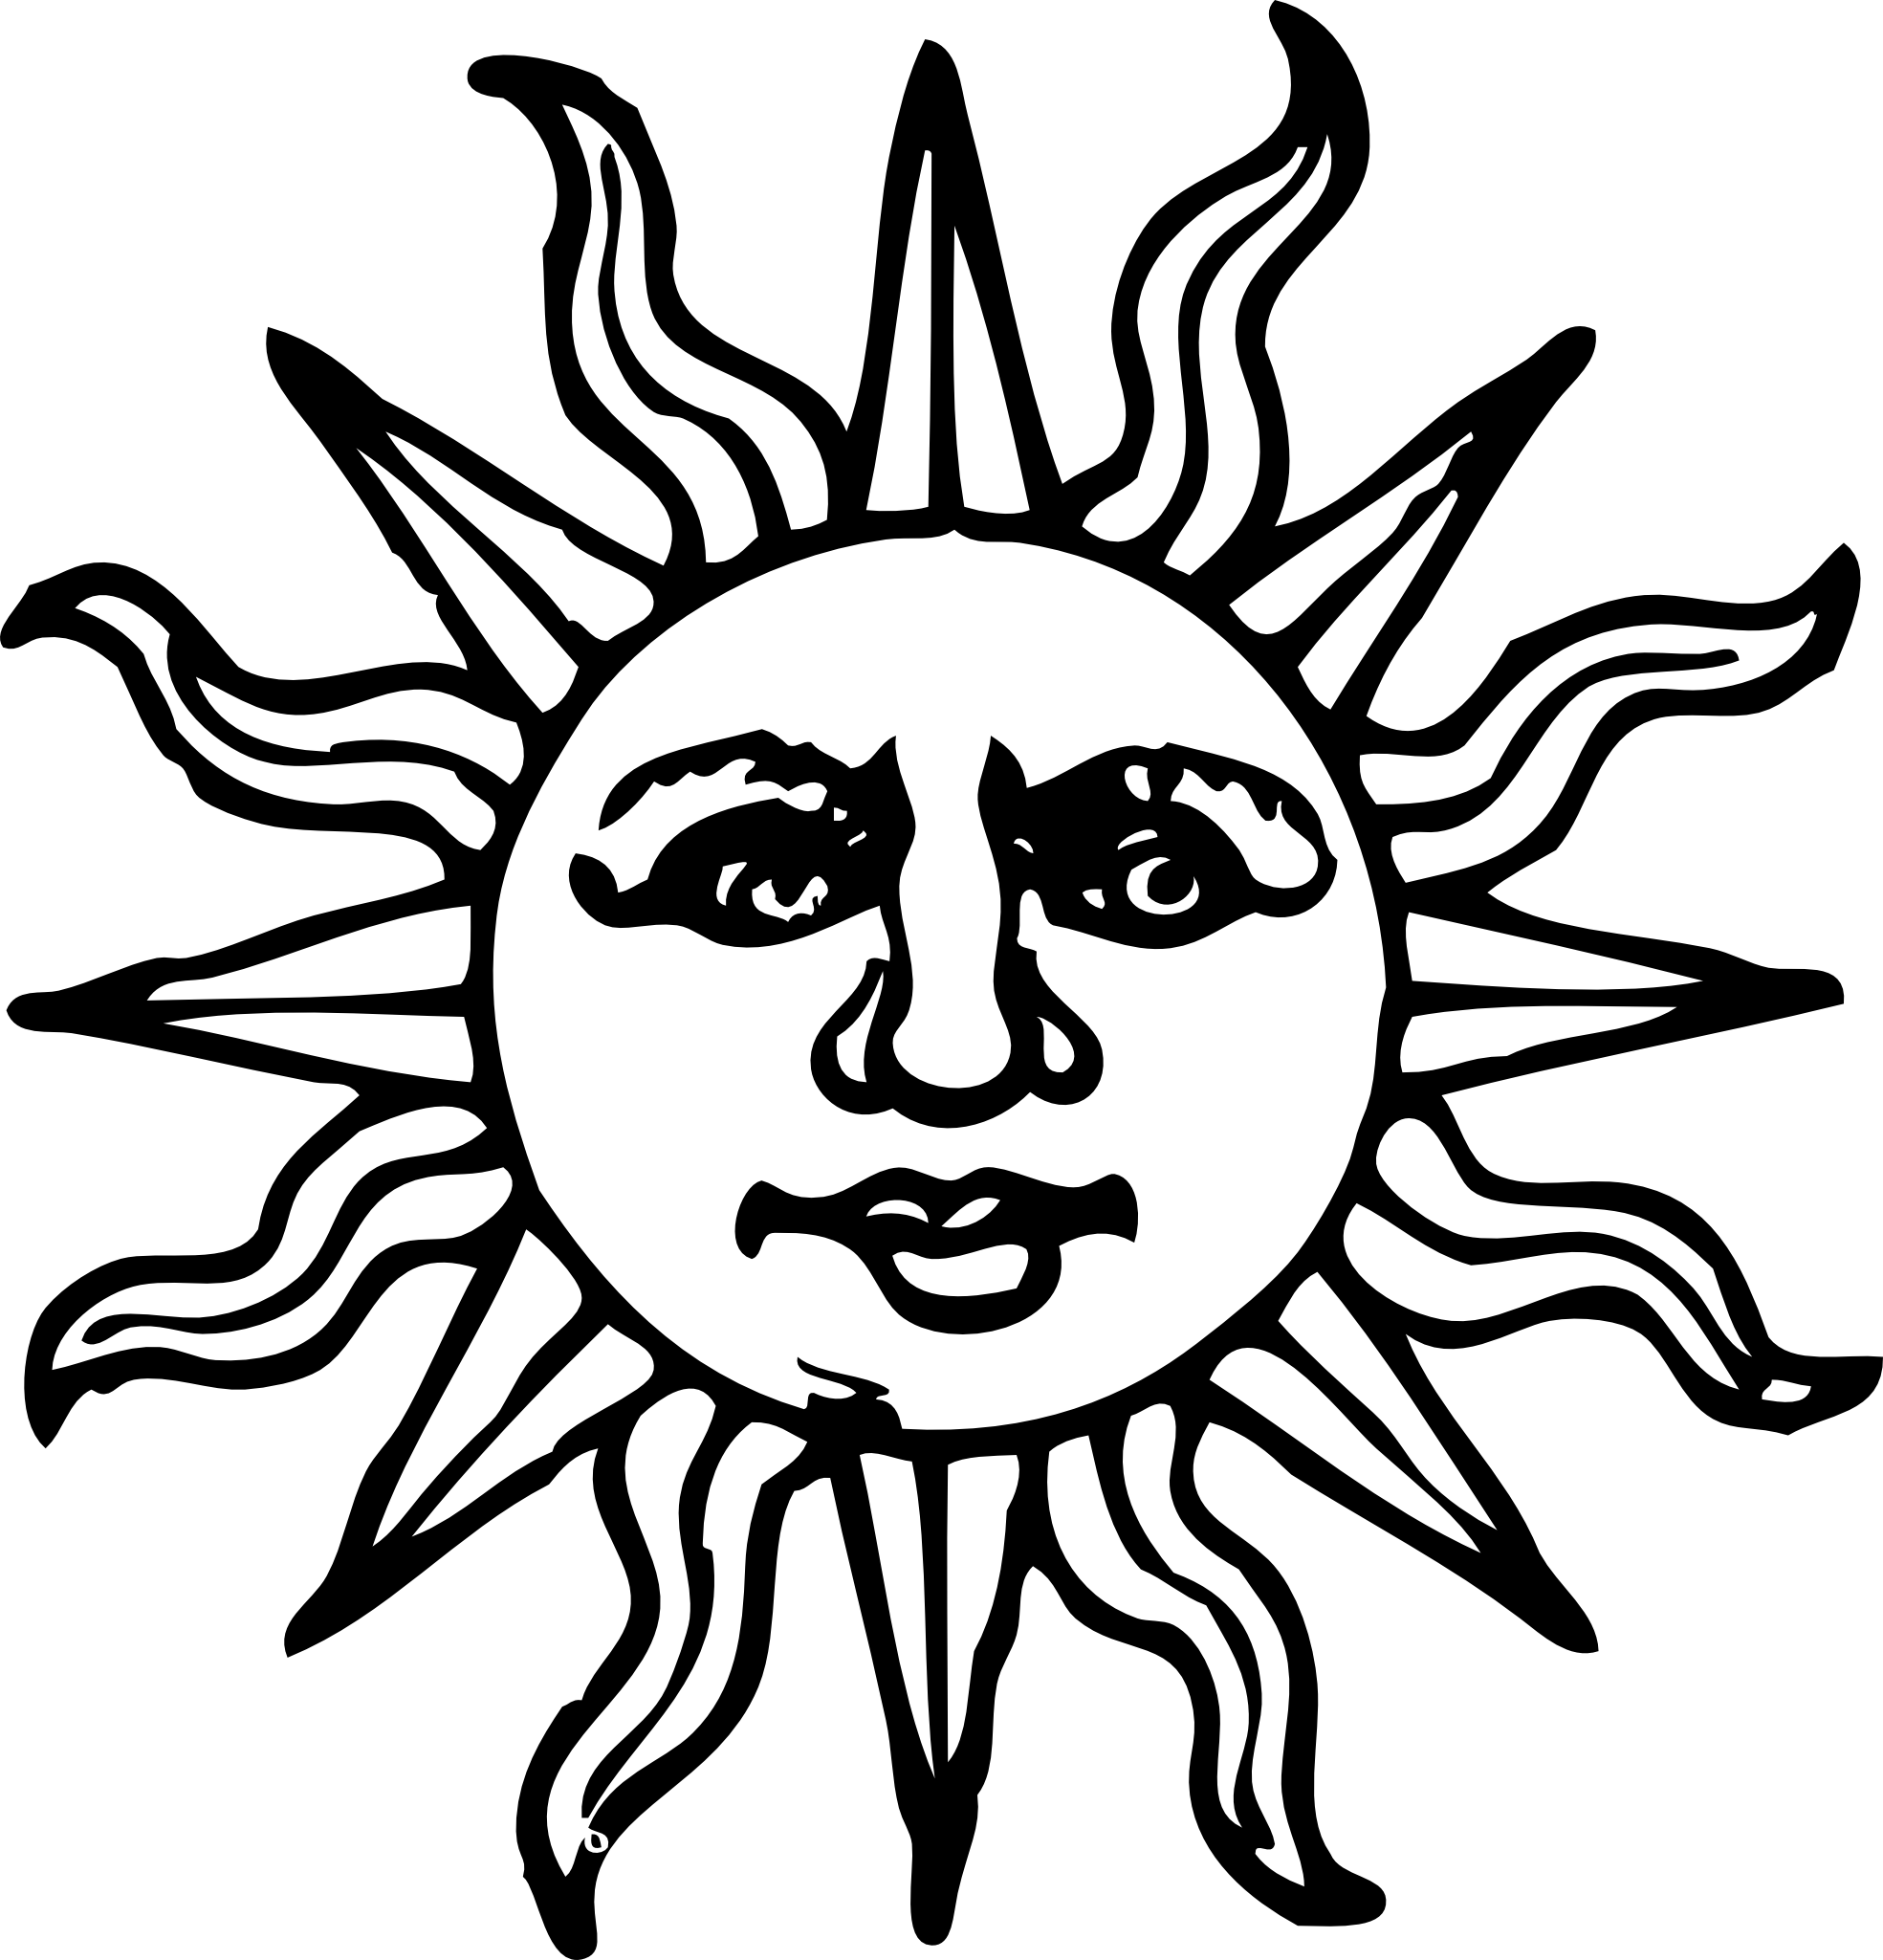 Line Art Sun : Sun clipart black and white best